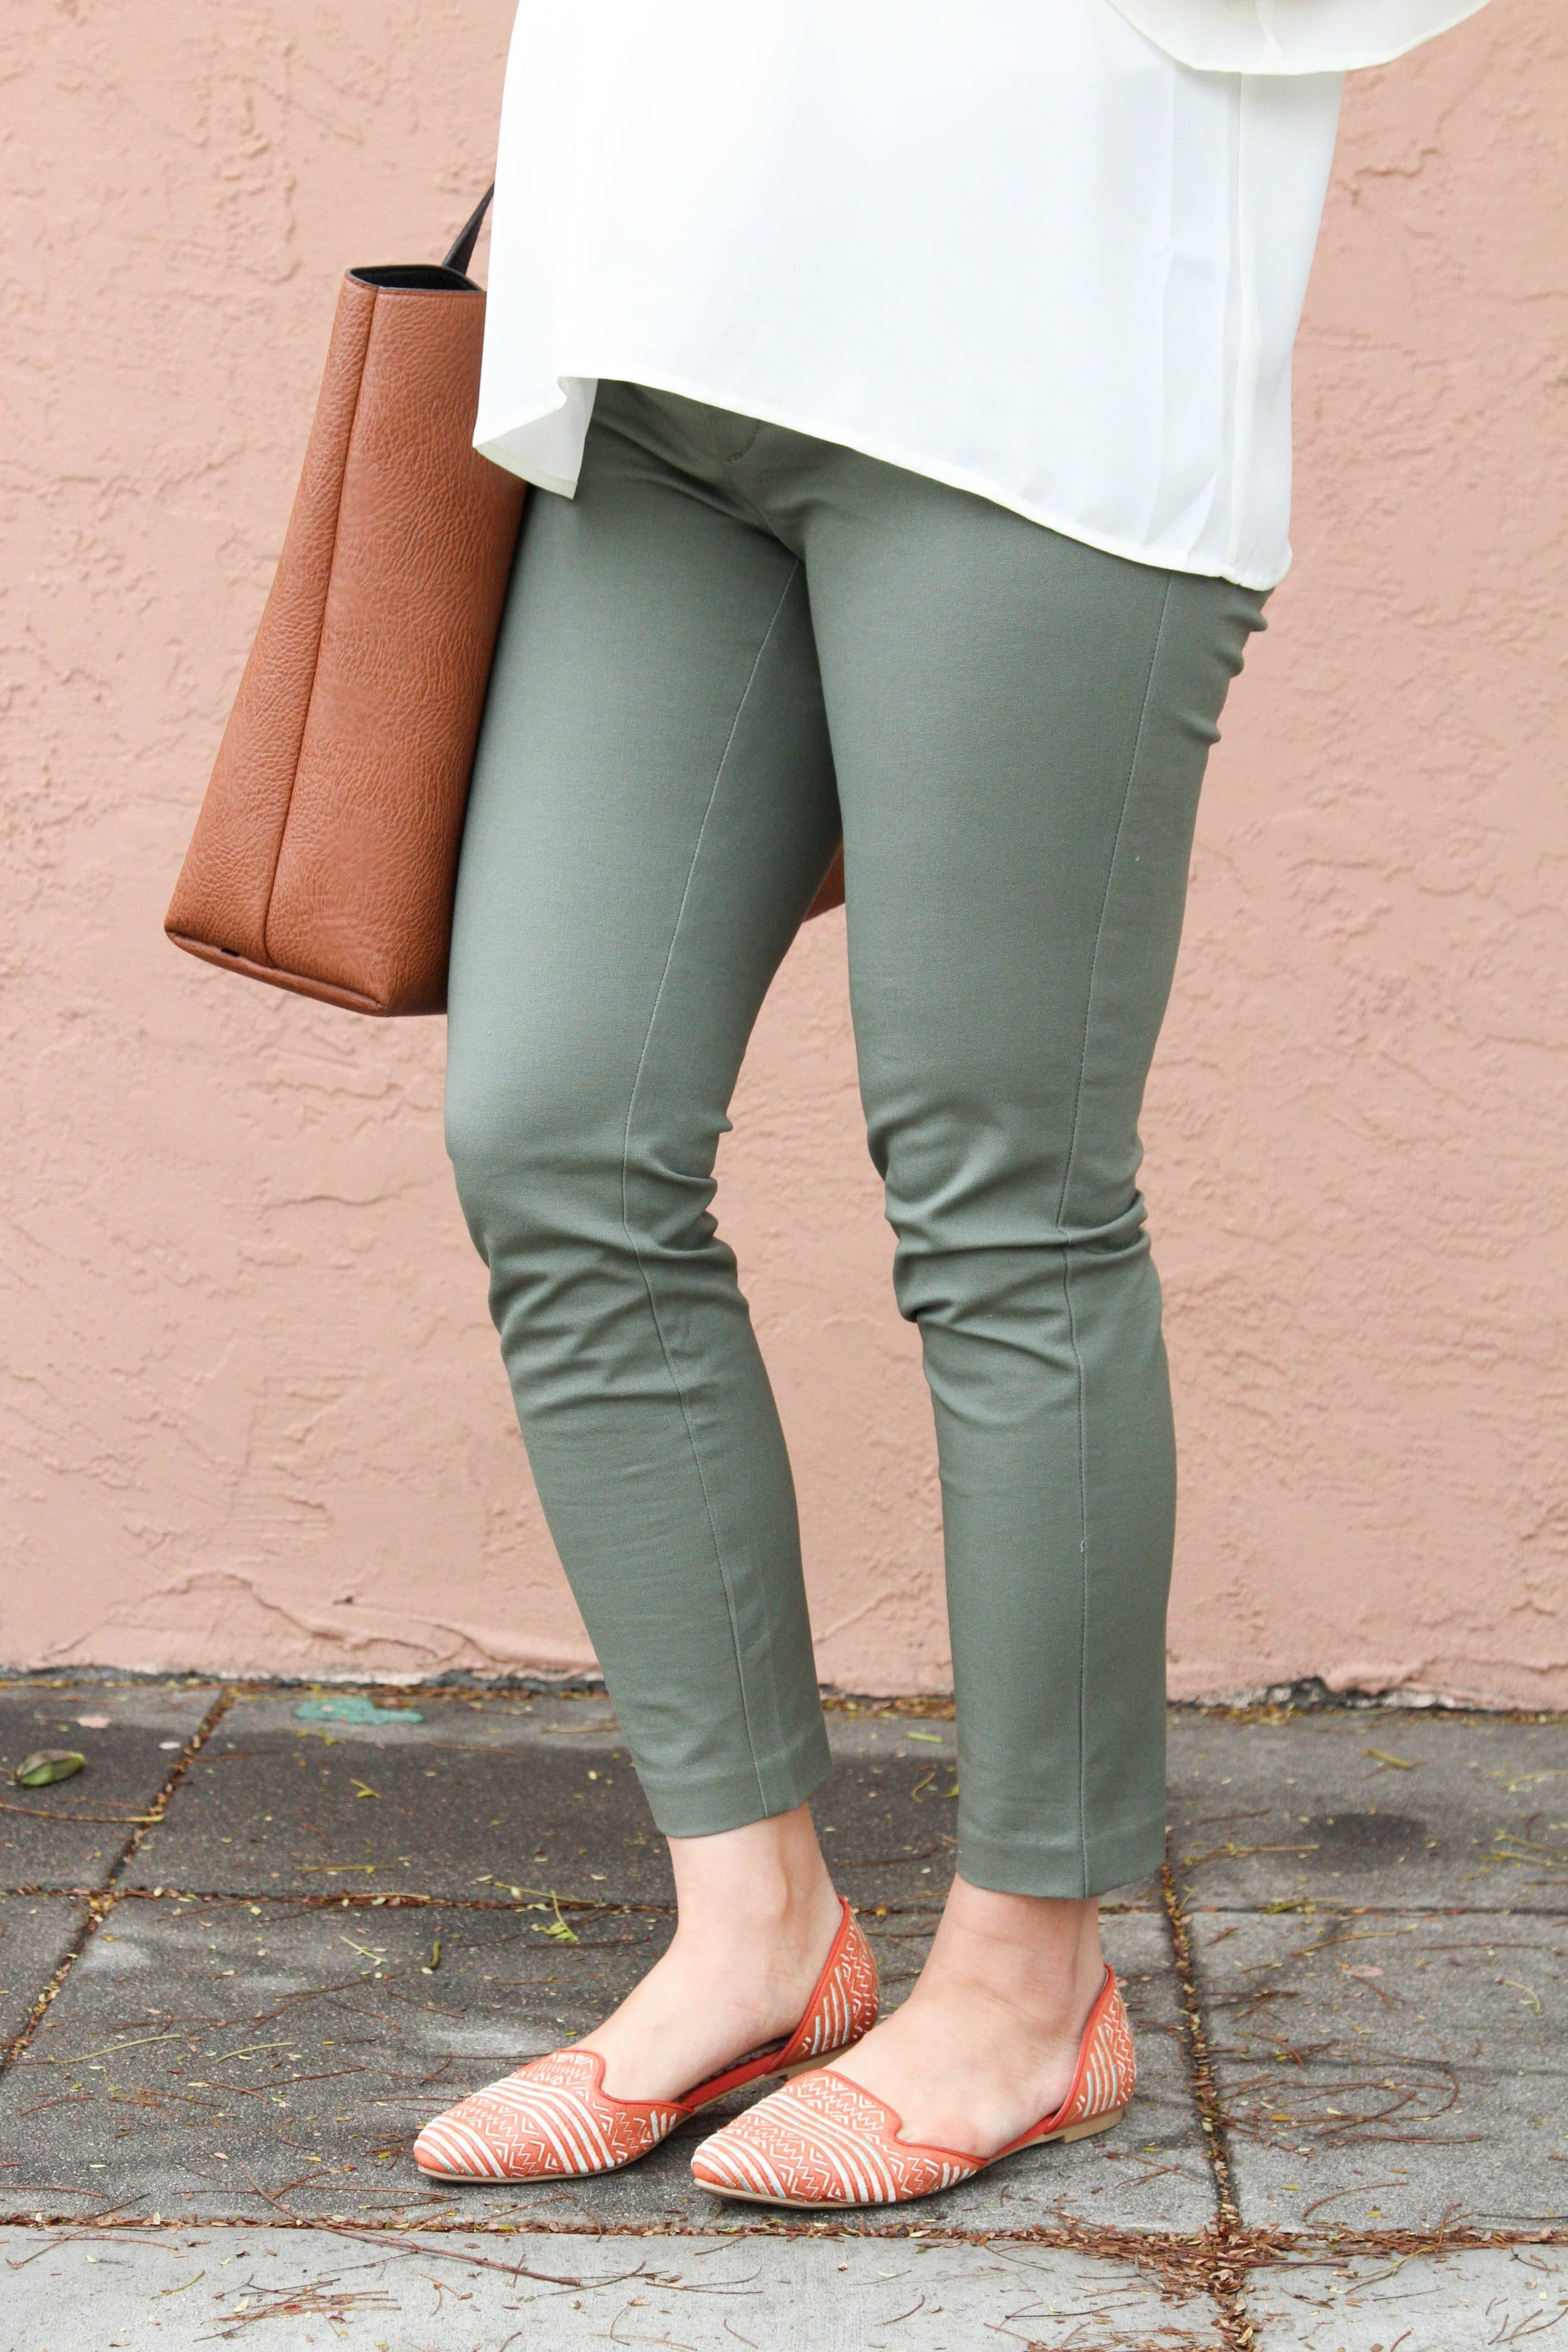 Statement Flats + Green Chinos + Brown Tote